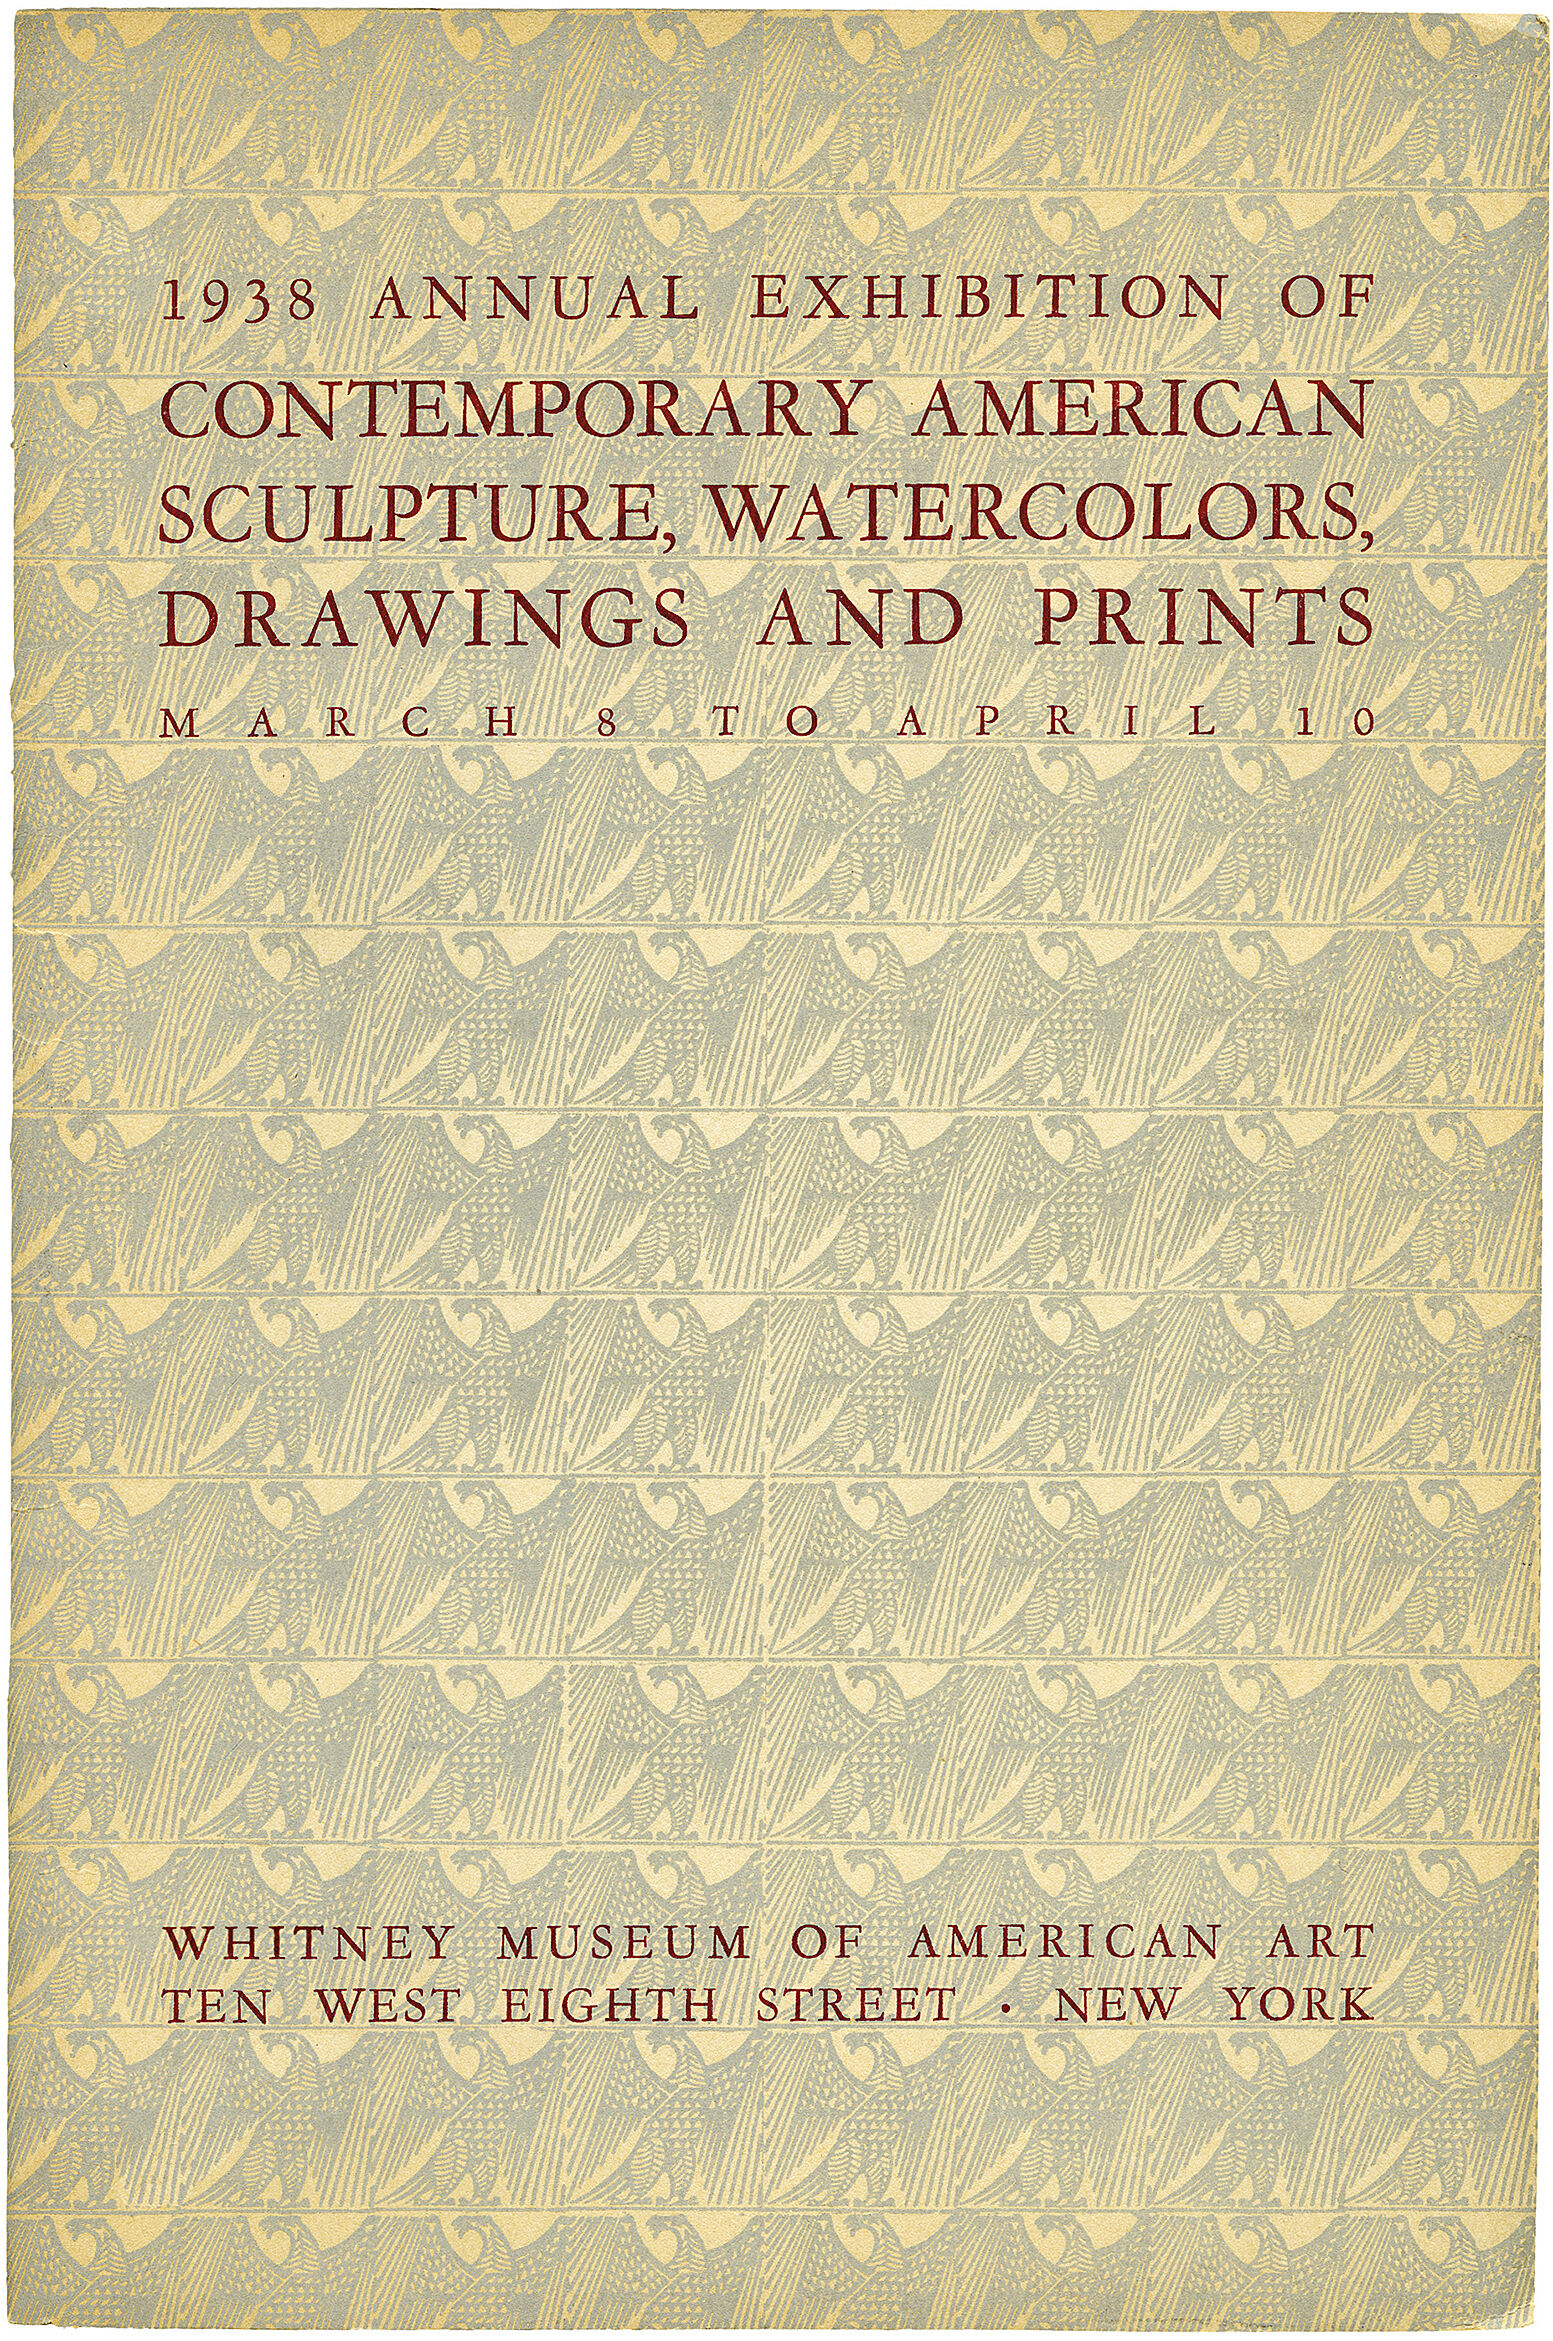 Cover for 1938 Annual Exhibition of Contemporary American Sculpture, Watercolors, Drawings and Prints catalogue